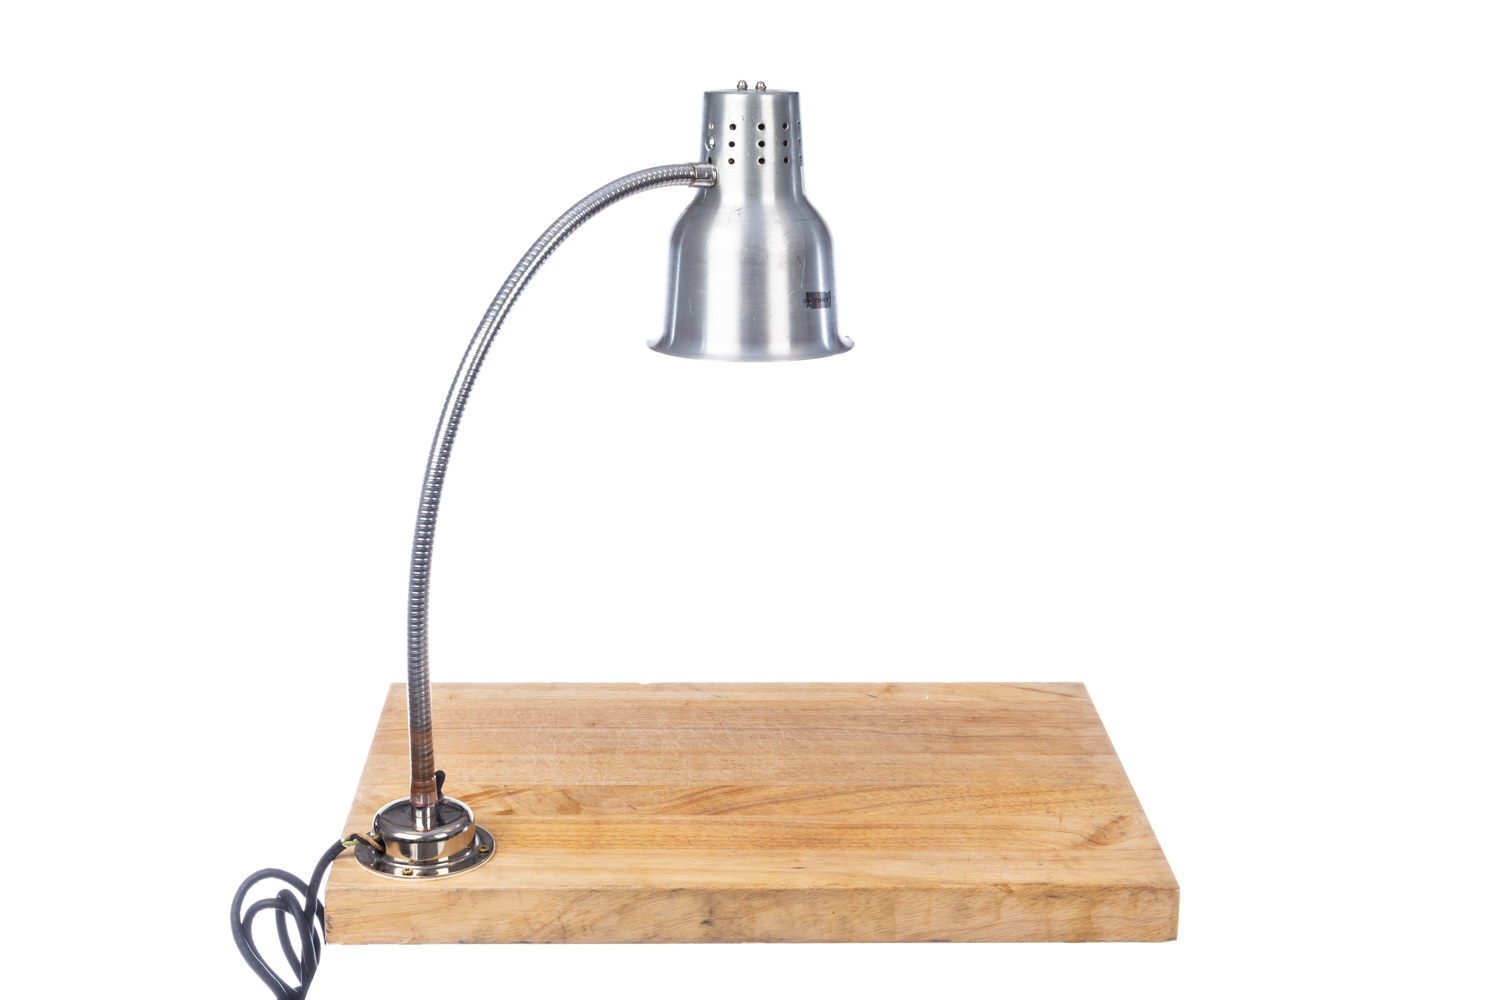 Deluxe Cutting Board & Heat Lamp